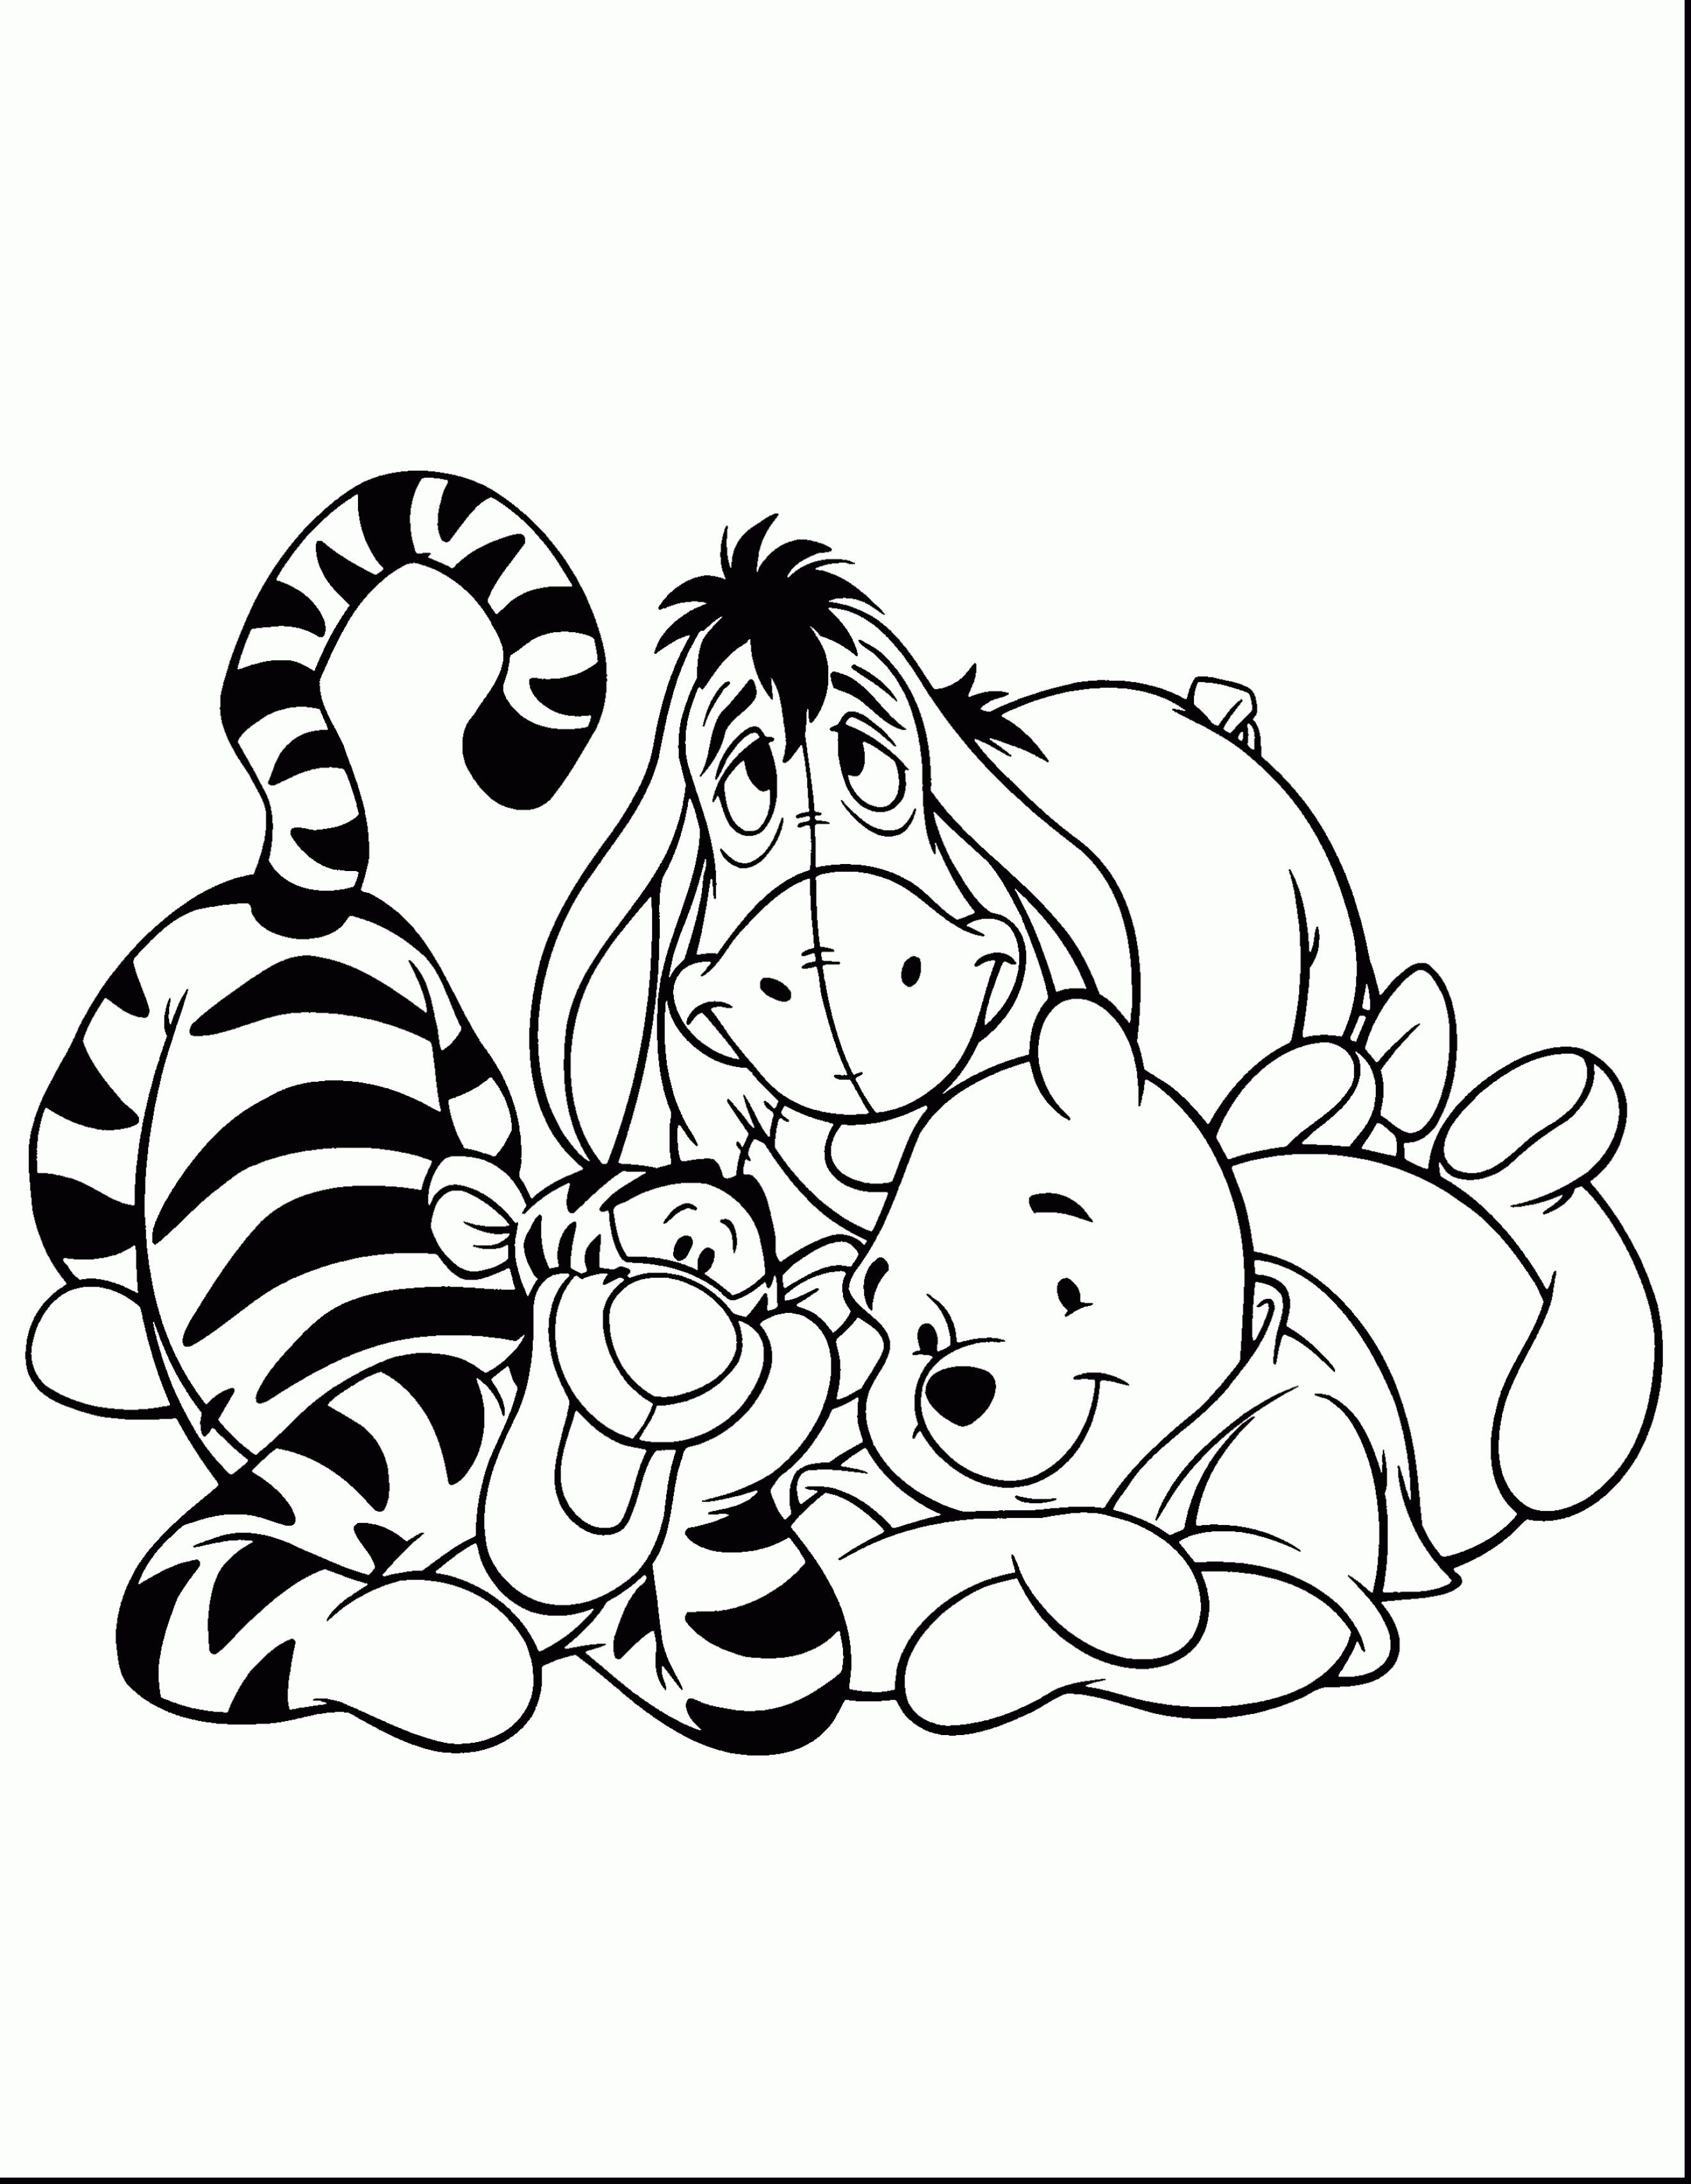 Inspiration Photo Of Tigger Coloring Pages Davemelillo Com Bear Coloring Pages Coloring Pages Coloring Books